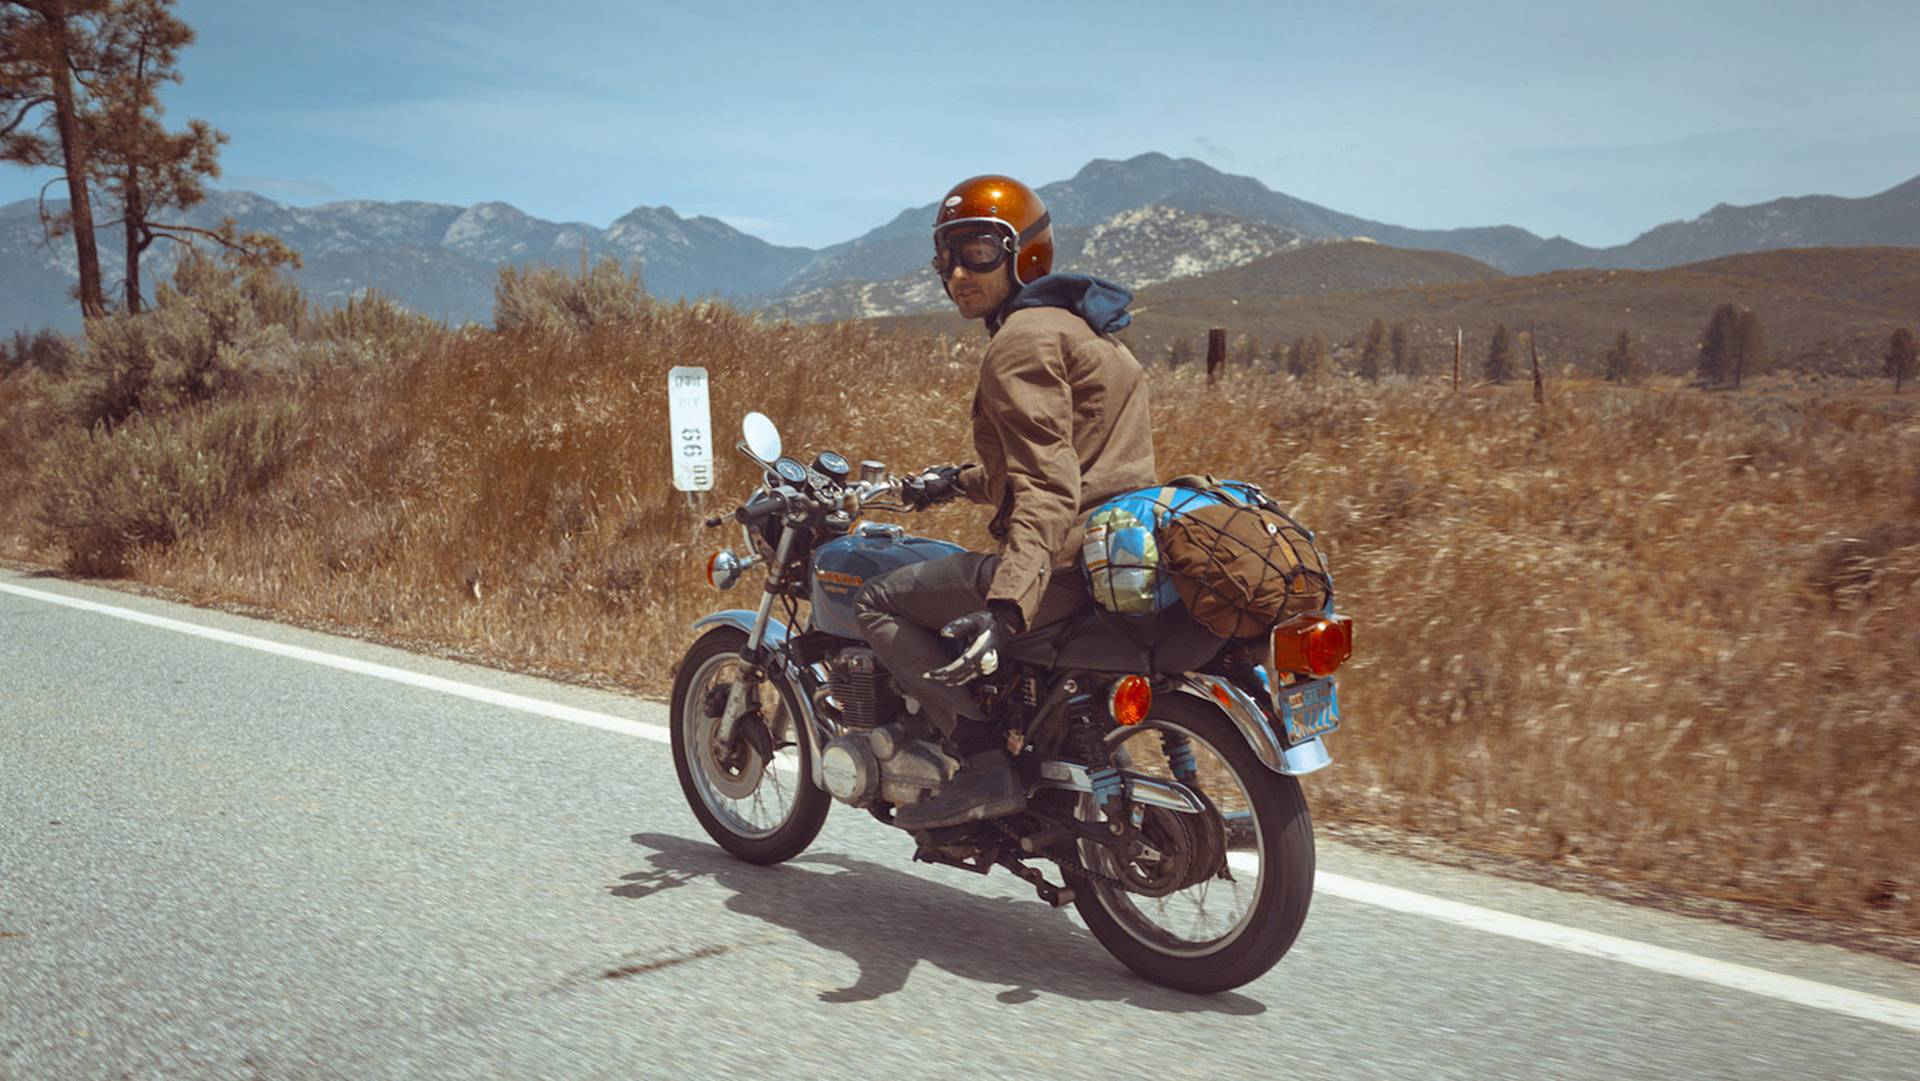 e9f1cd1049d 10 Things You Need To Take On A Motorcycle Trip